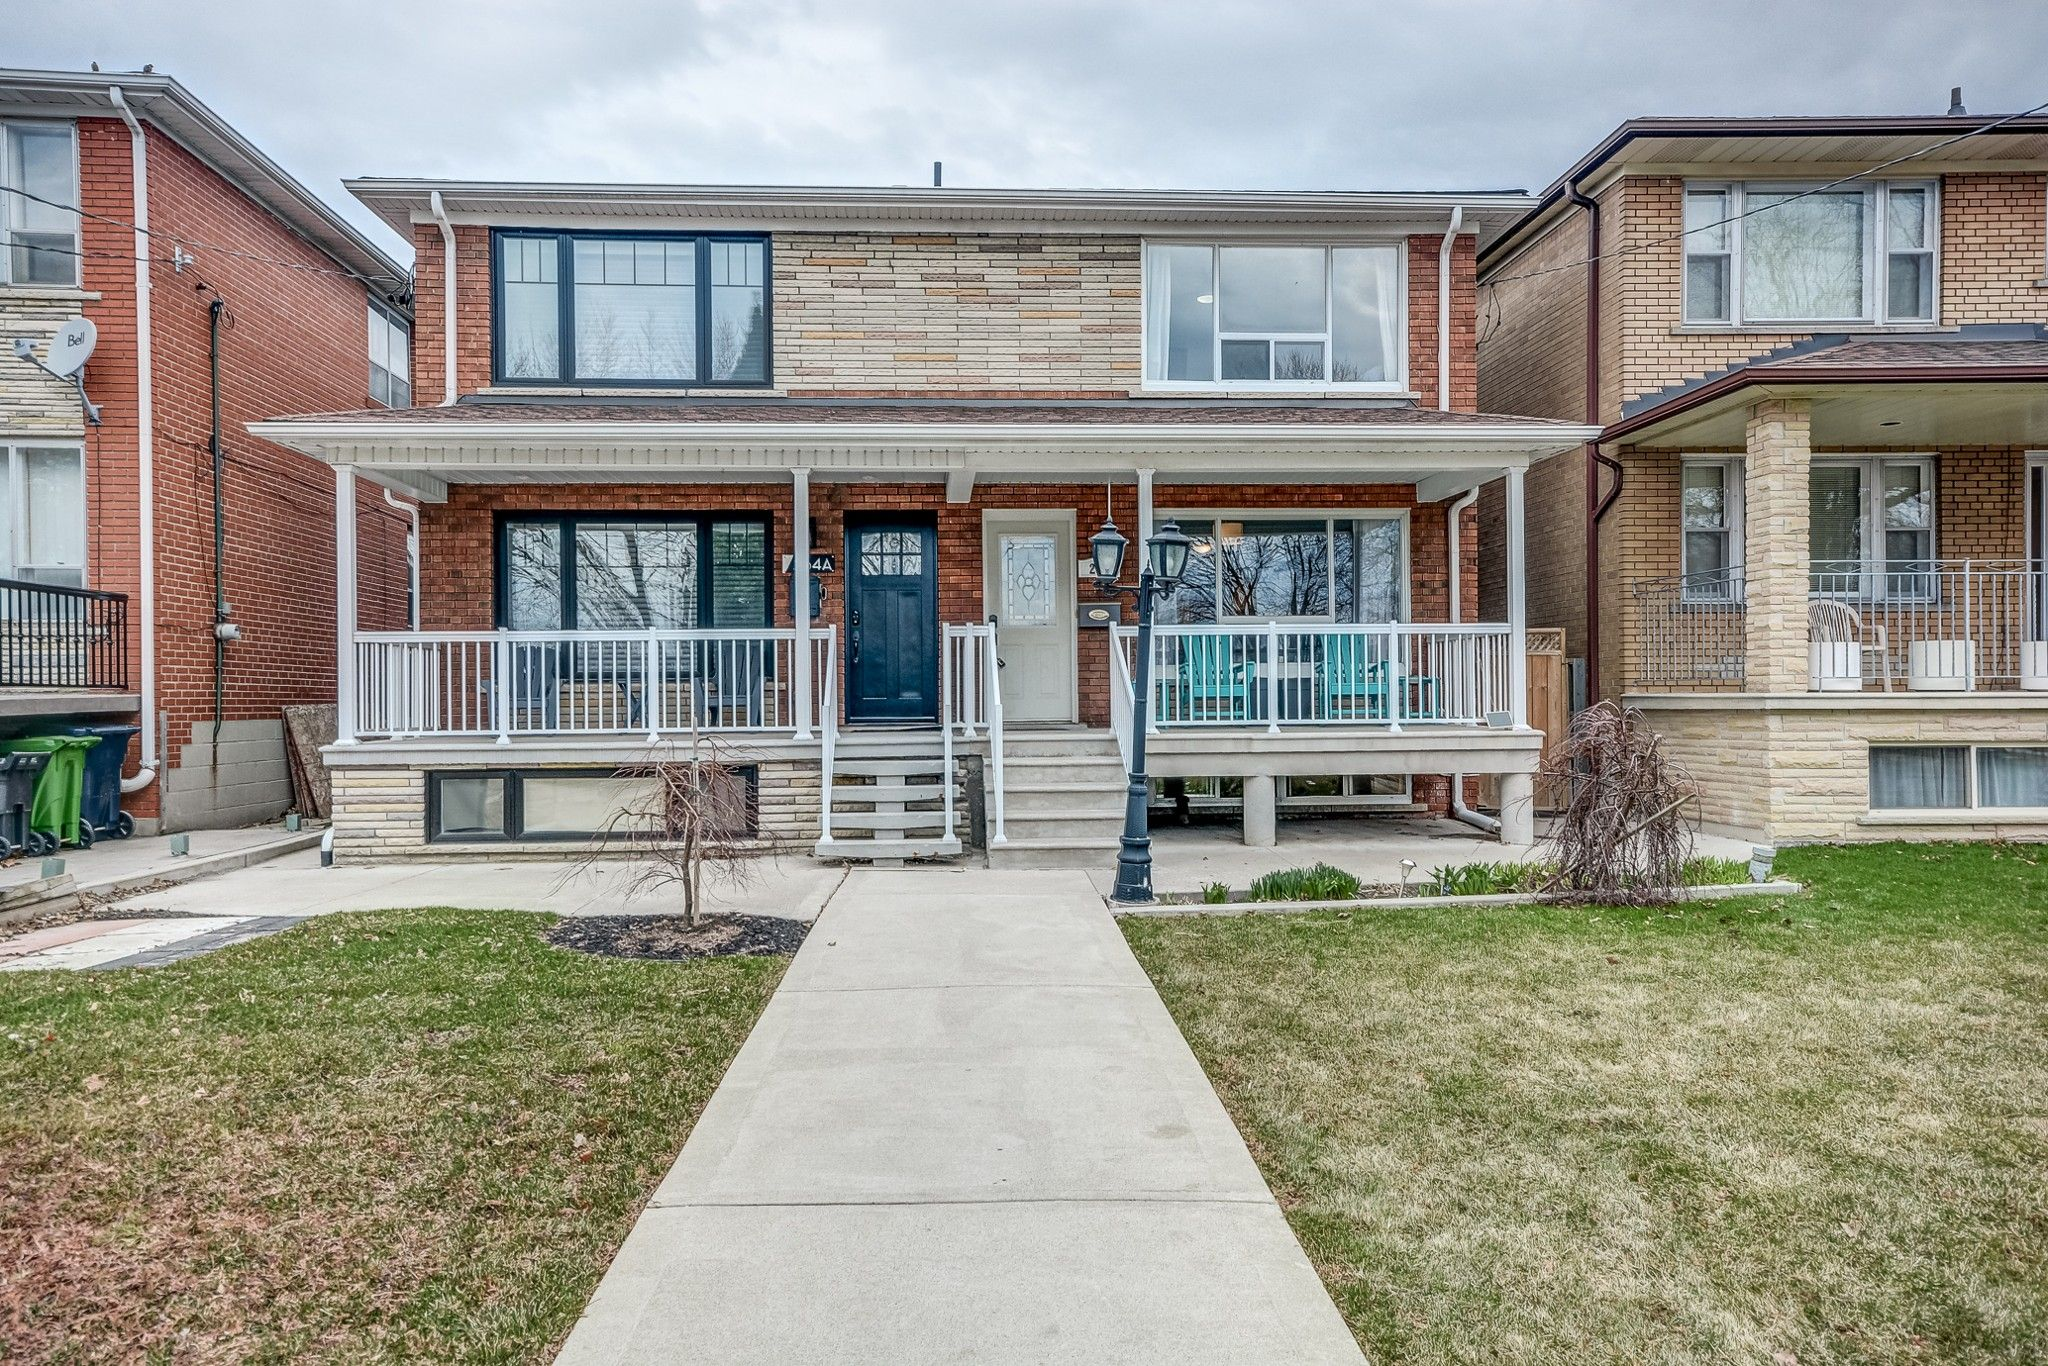 Main Photo: 264 Ryding Avenue in Toronto: Junction Area House (2-Storey) for sale (Toronto W02)  : MLS®# W4415963